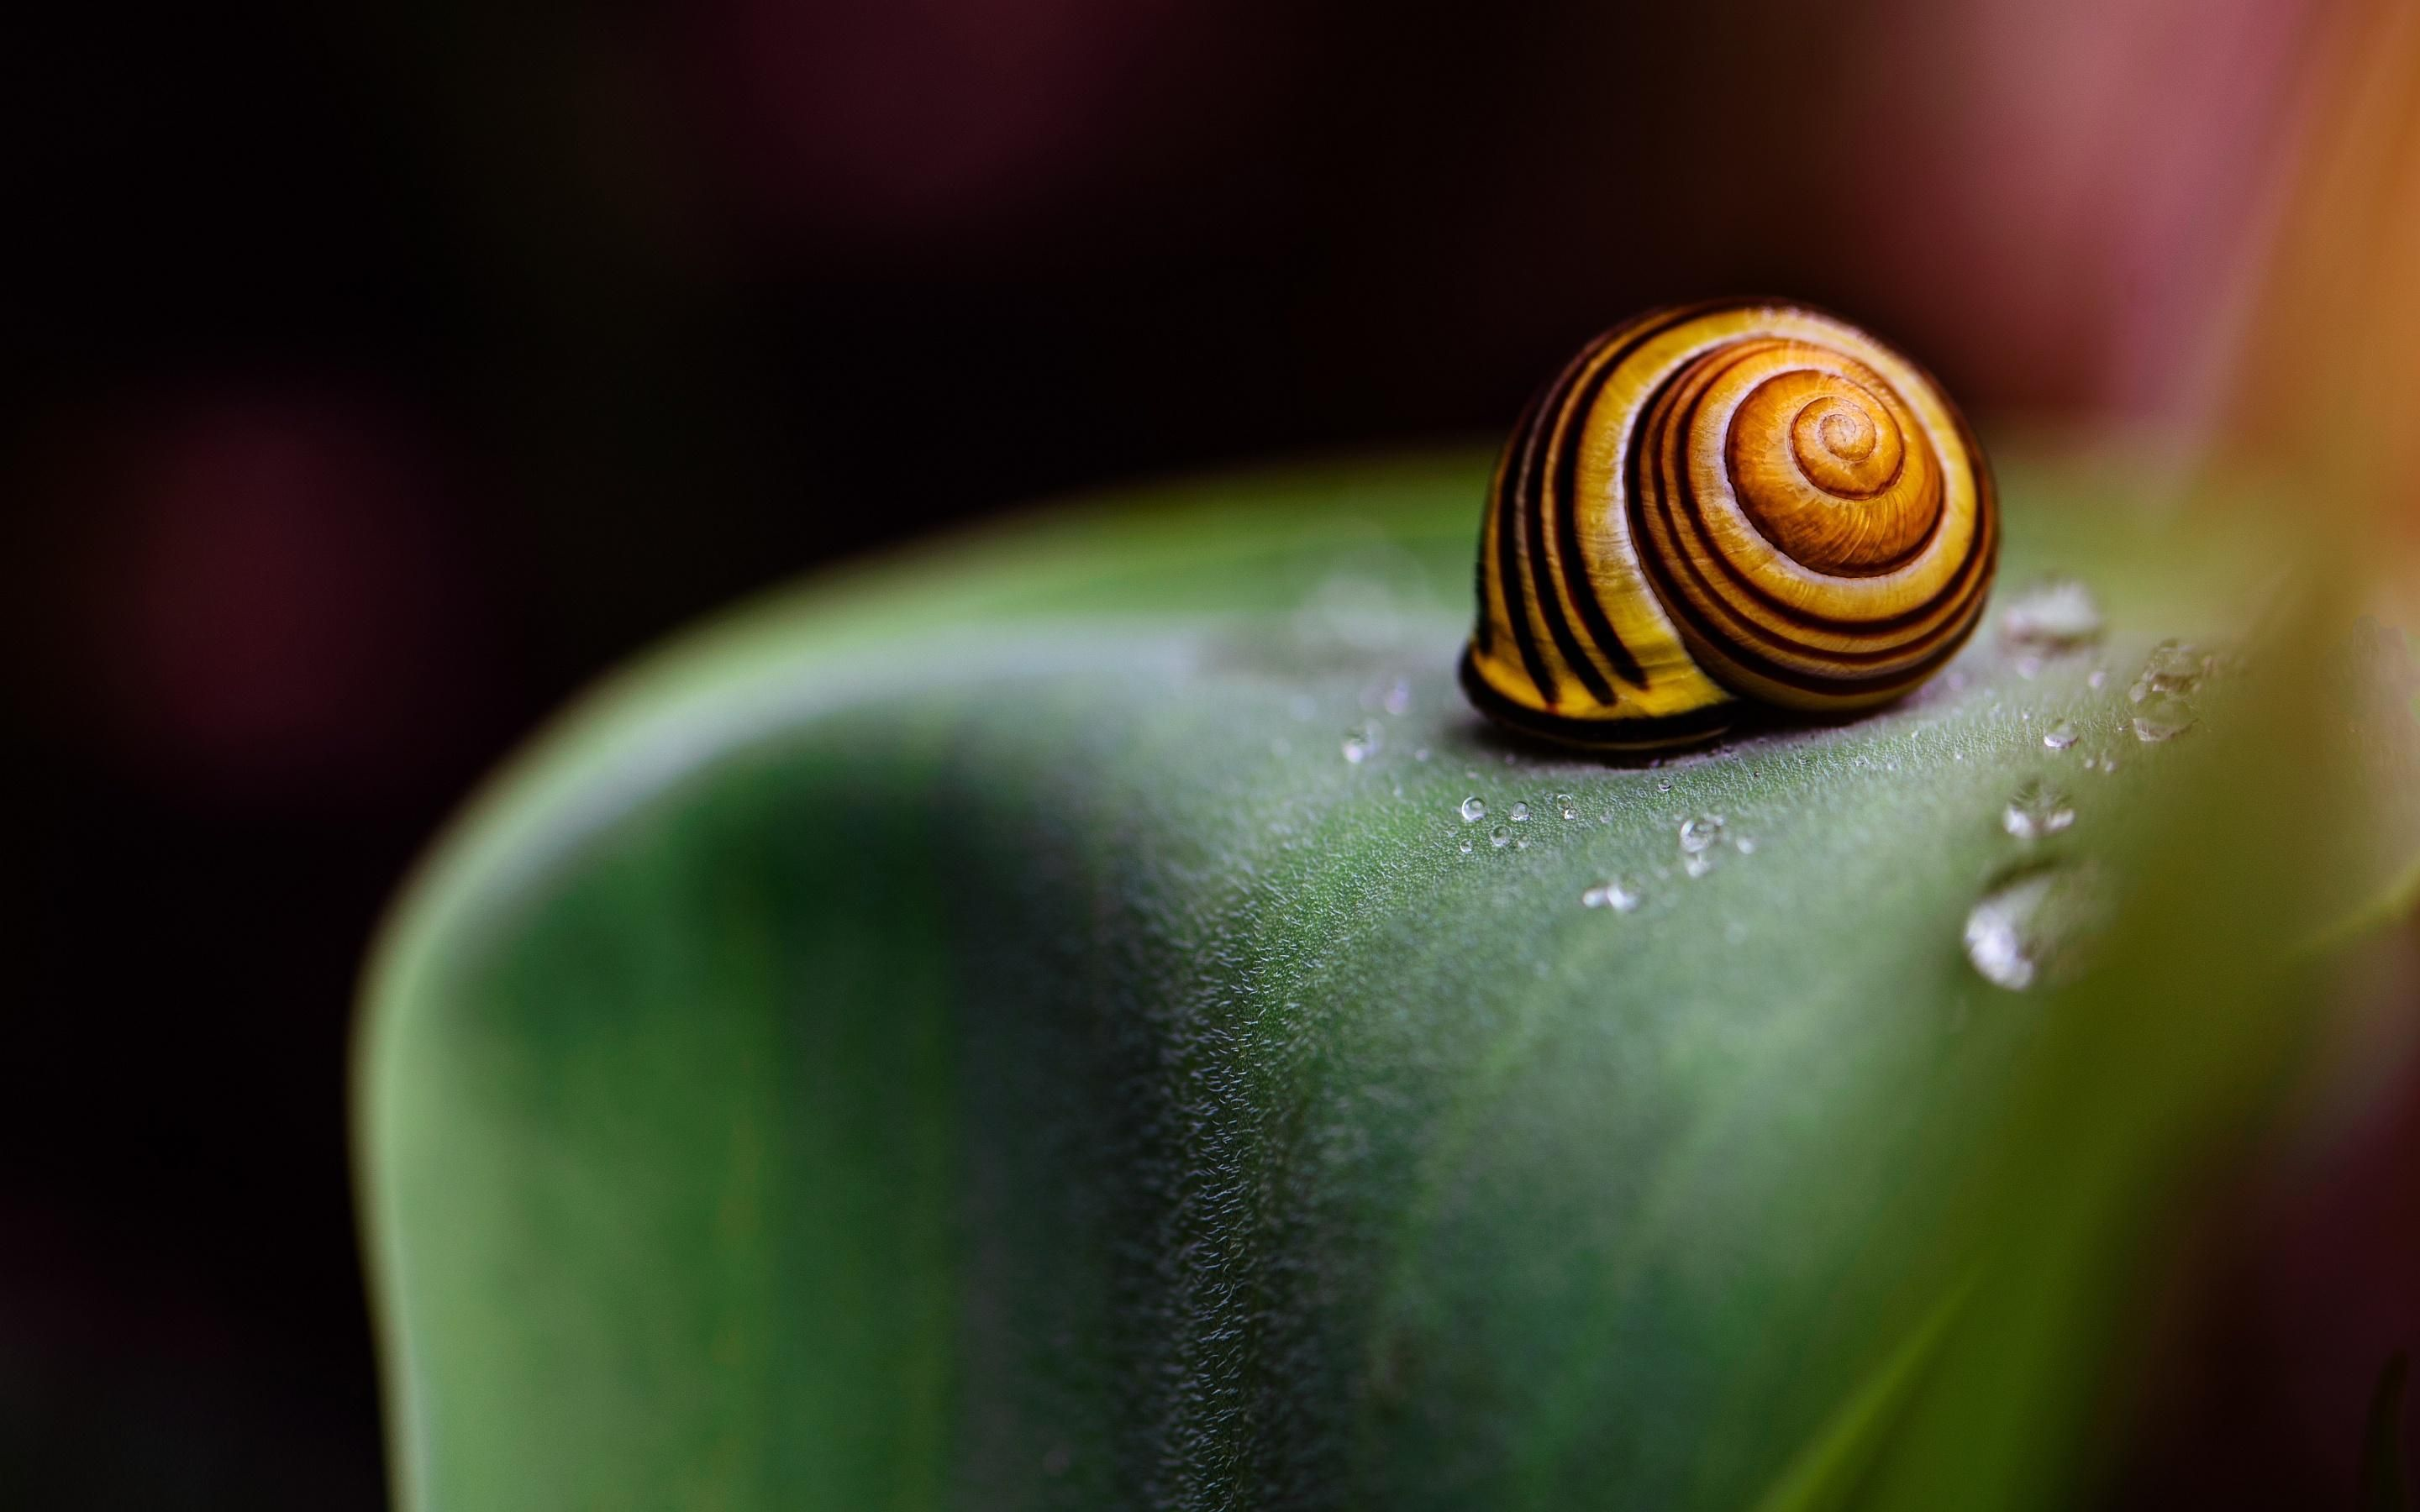 Snail Wallpapers, PC, Laptop 35 Snail Backgrounds in FHD